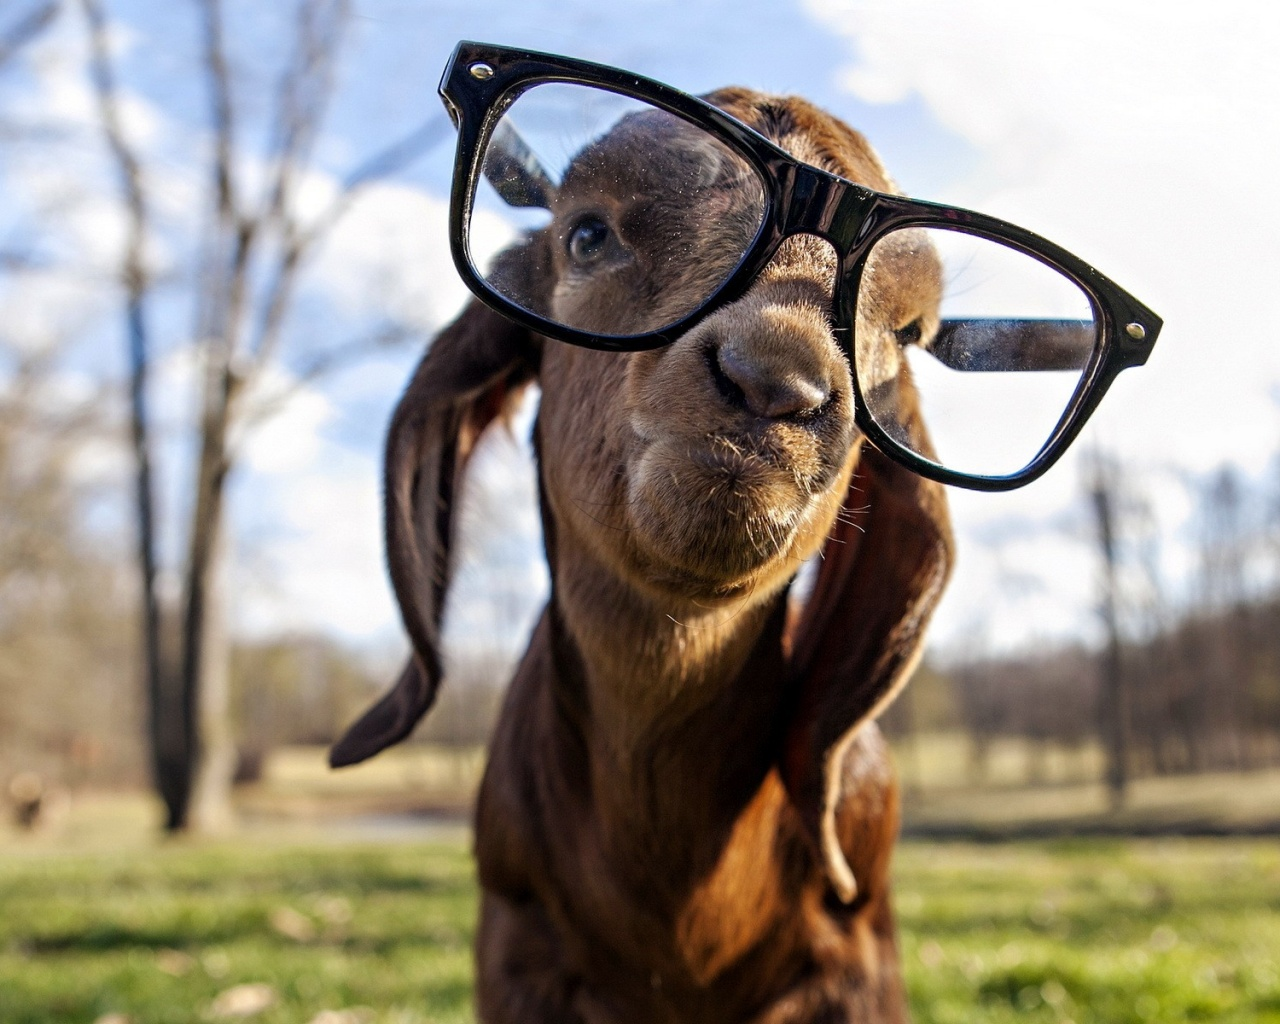 Description: The Wallpaper above is Goat with glasses Wallpaper in Resolution 1280x1024. Choose your Resolution and Download Goat with glasses Wallpaper